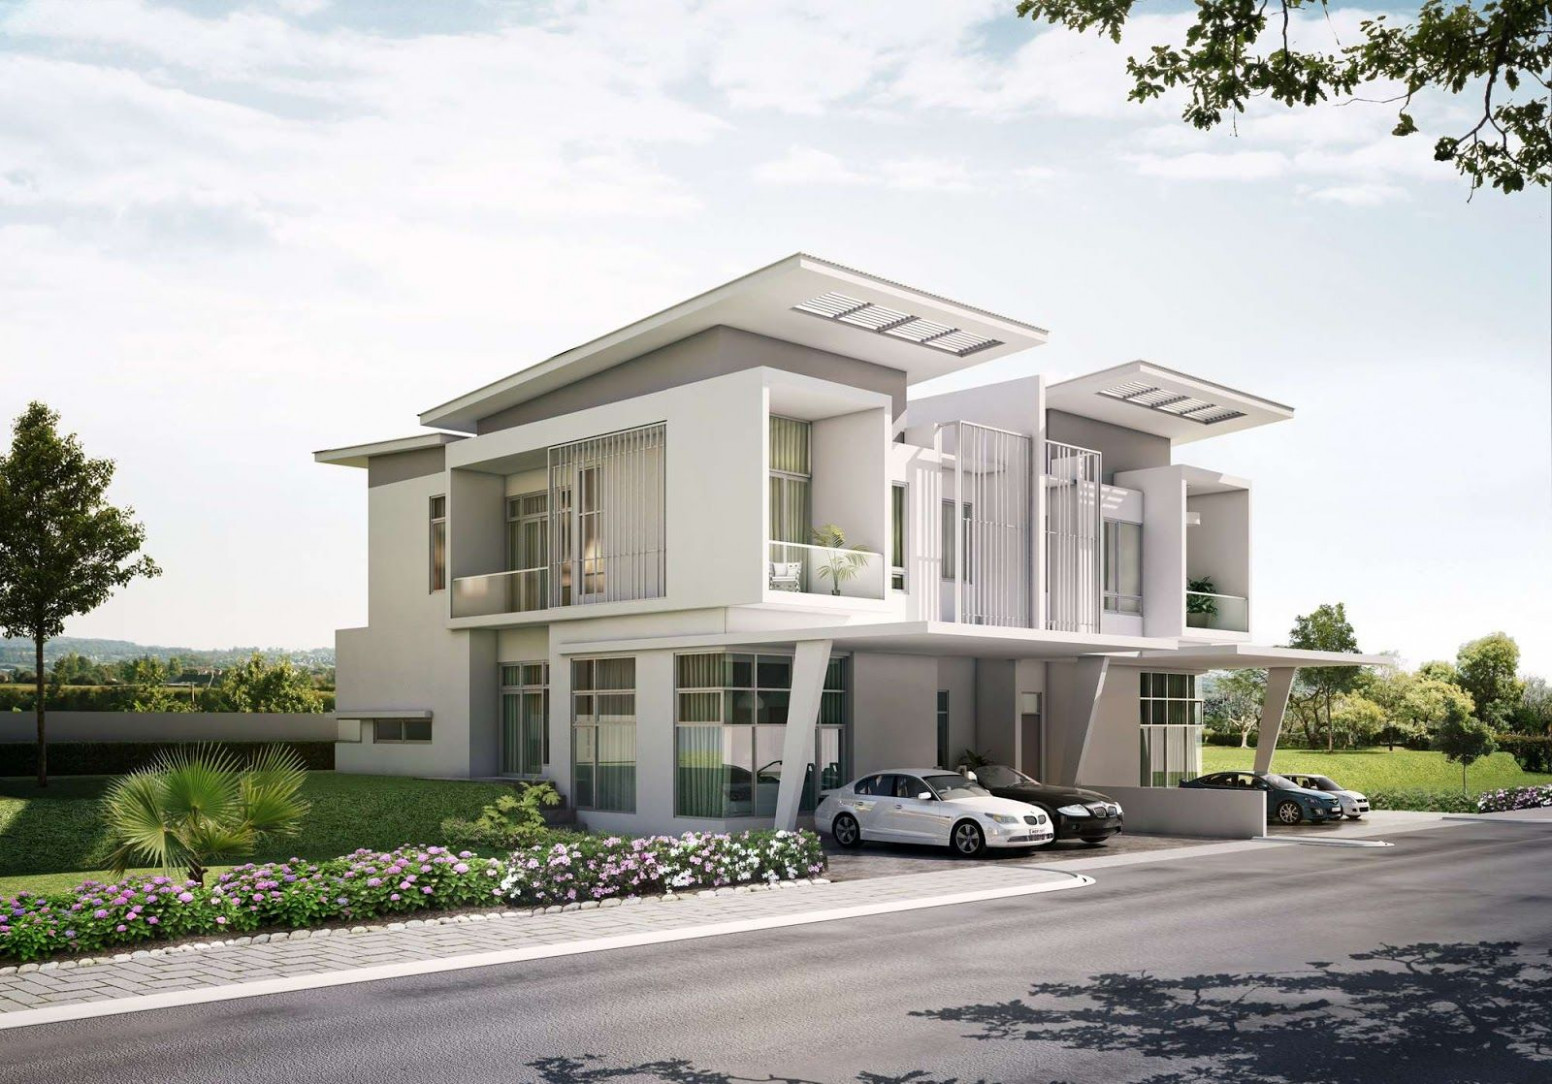 Modern Townhouse With Carport Google Search | Space Likes ..